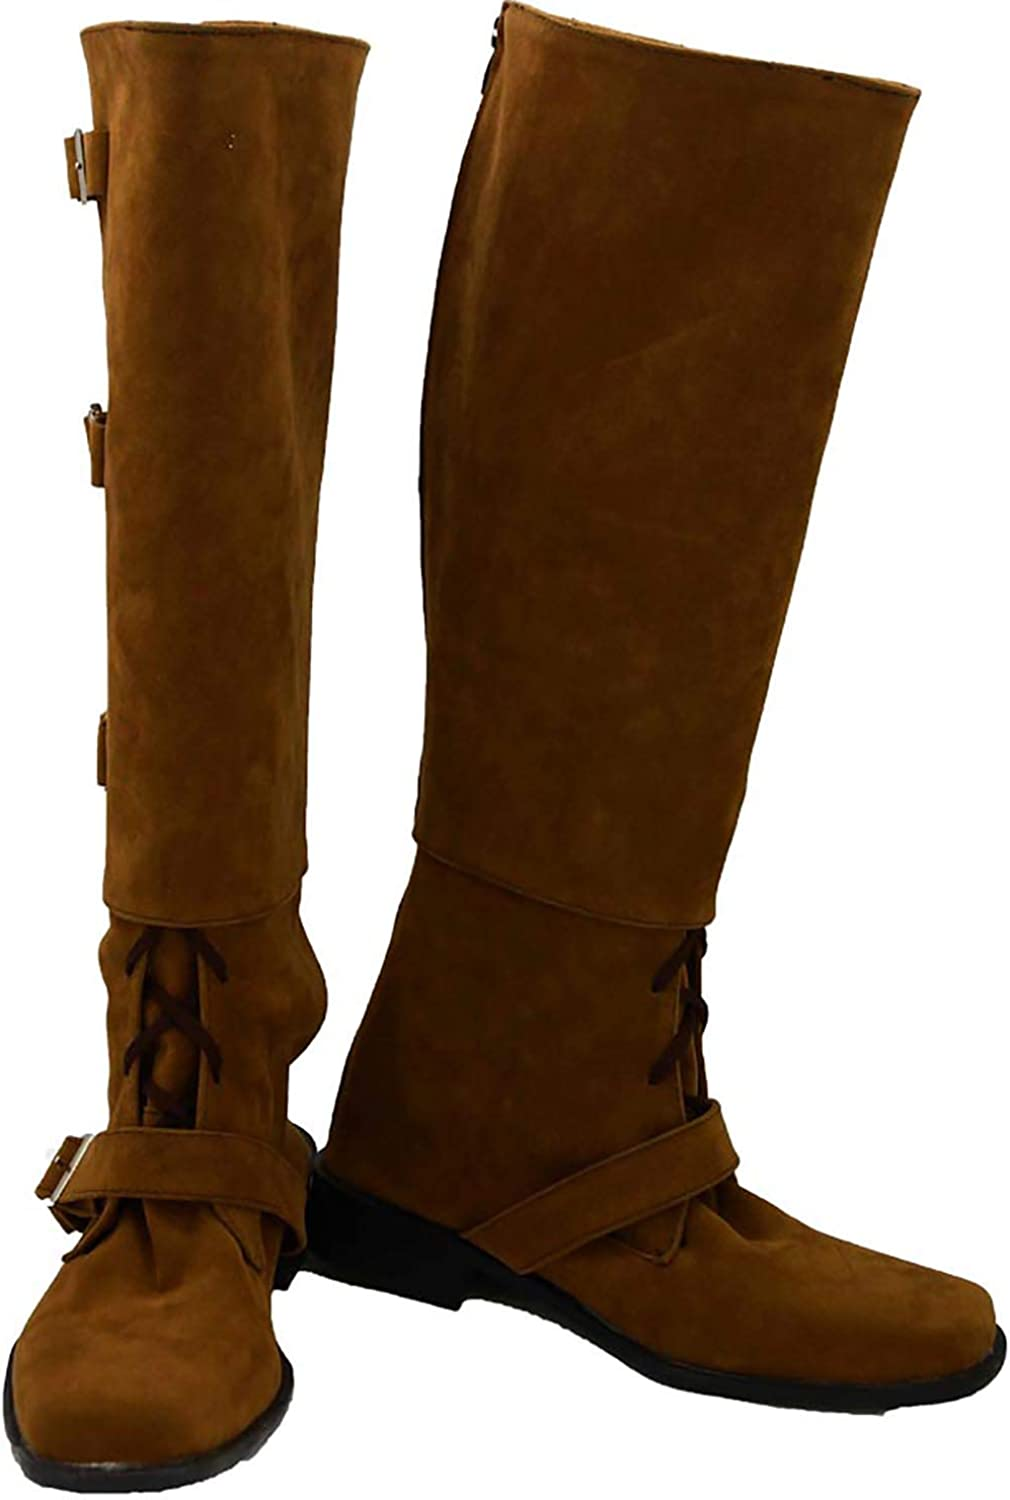 Cosplay Boots shoes for Doctor who River Song